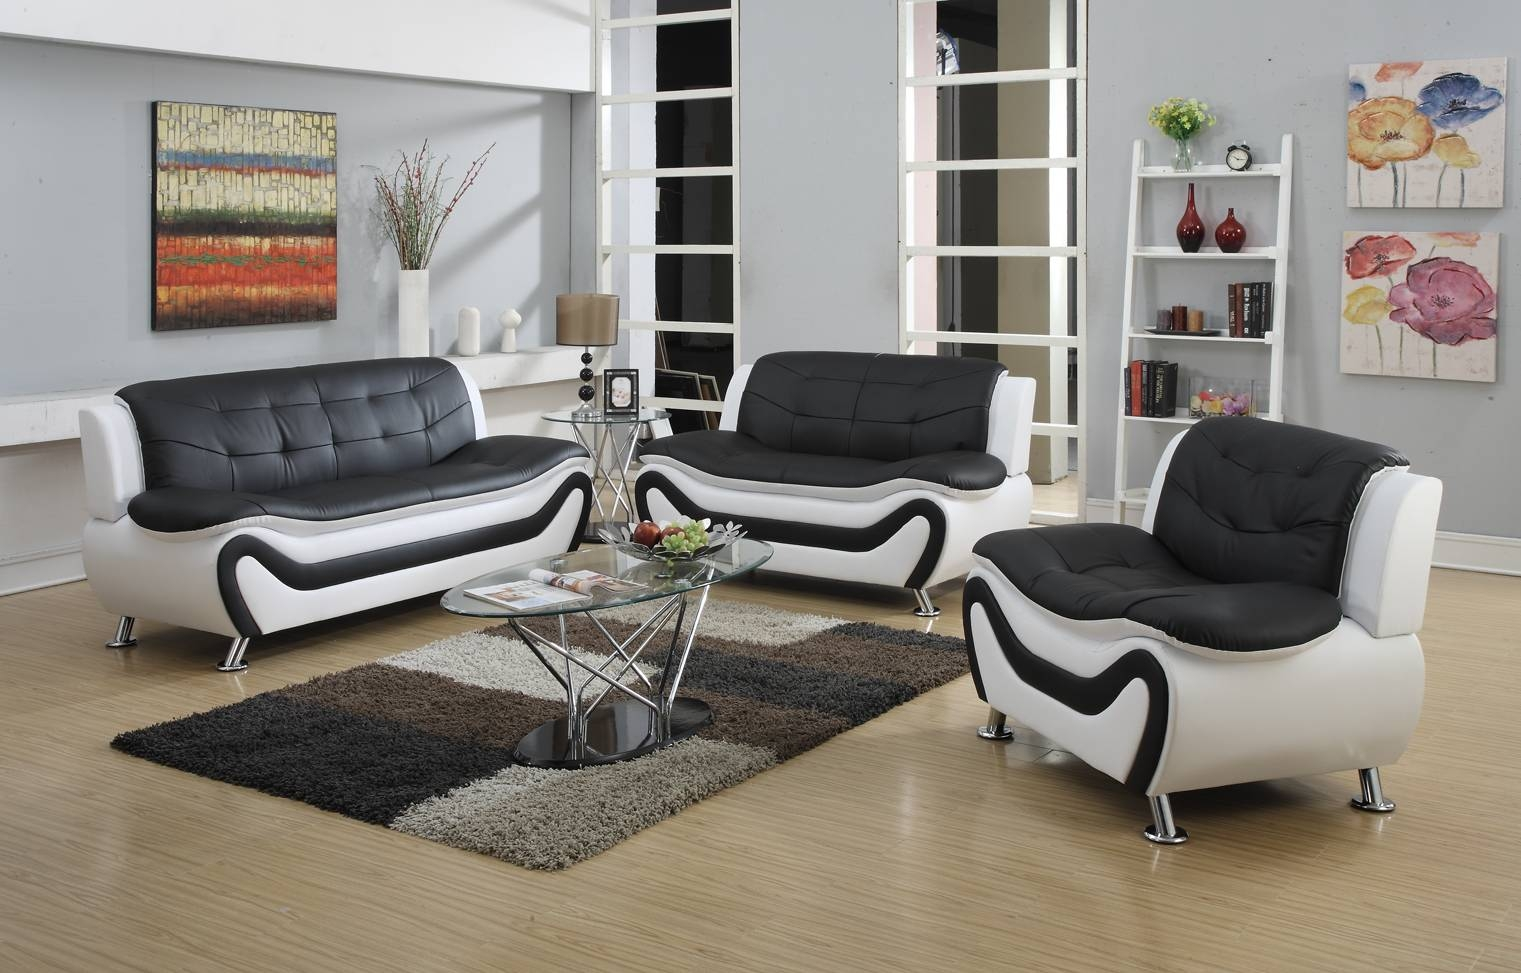 Ava Furniture Houston - Cheap Discount Contemporary Furniture In intended for Cheap Sofas Houston (Image 2 of 30)